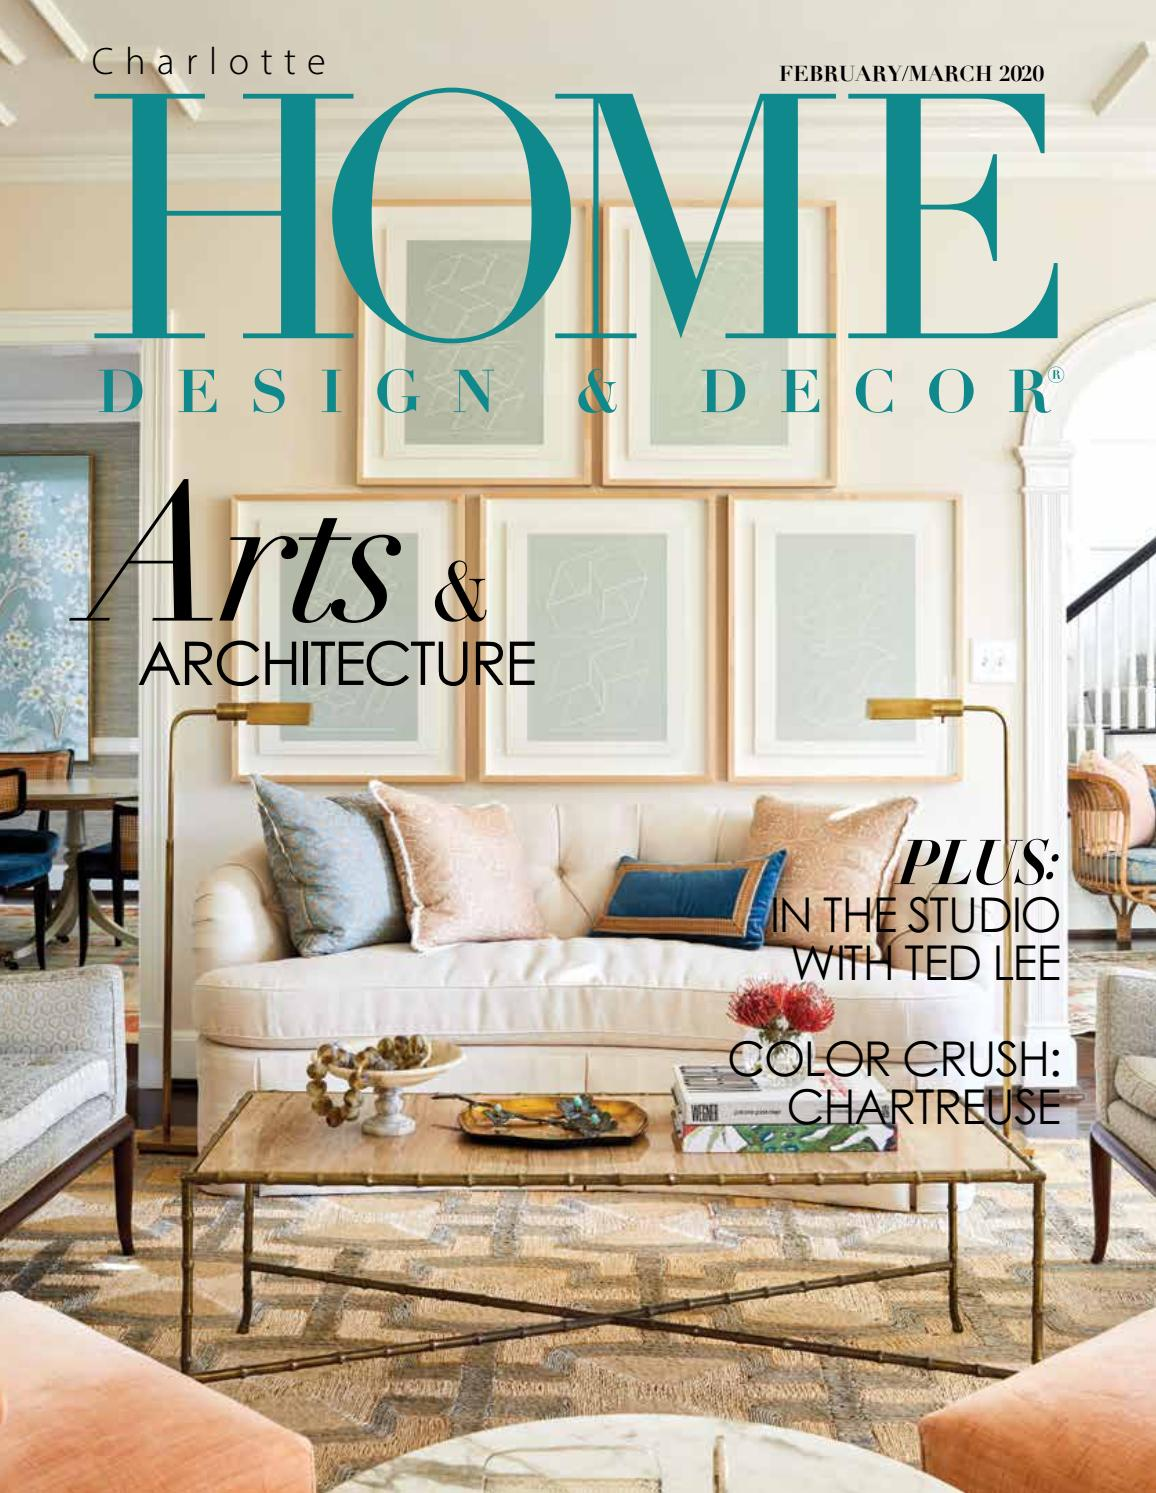 Hdd Charlotte February March 2020 By Home Design Decor Magazine Issuu